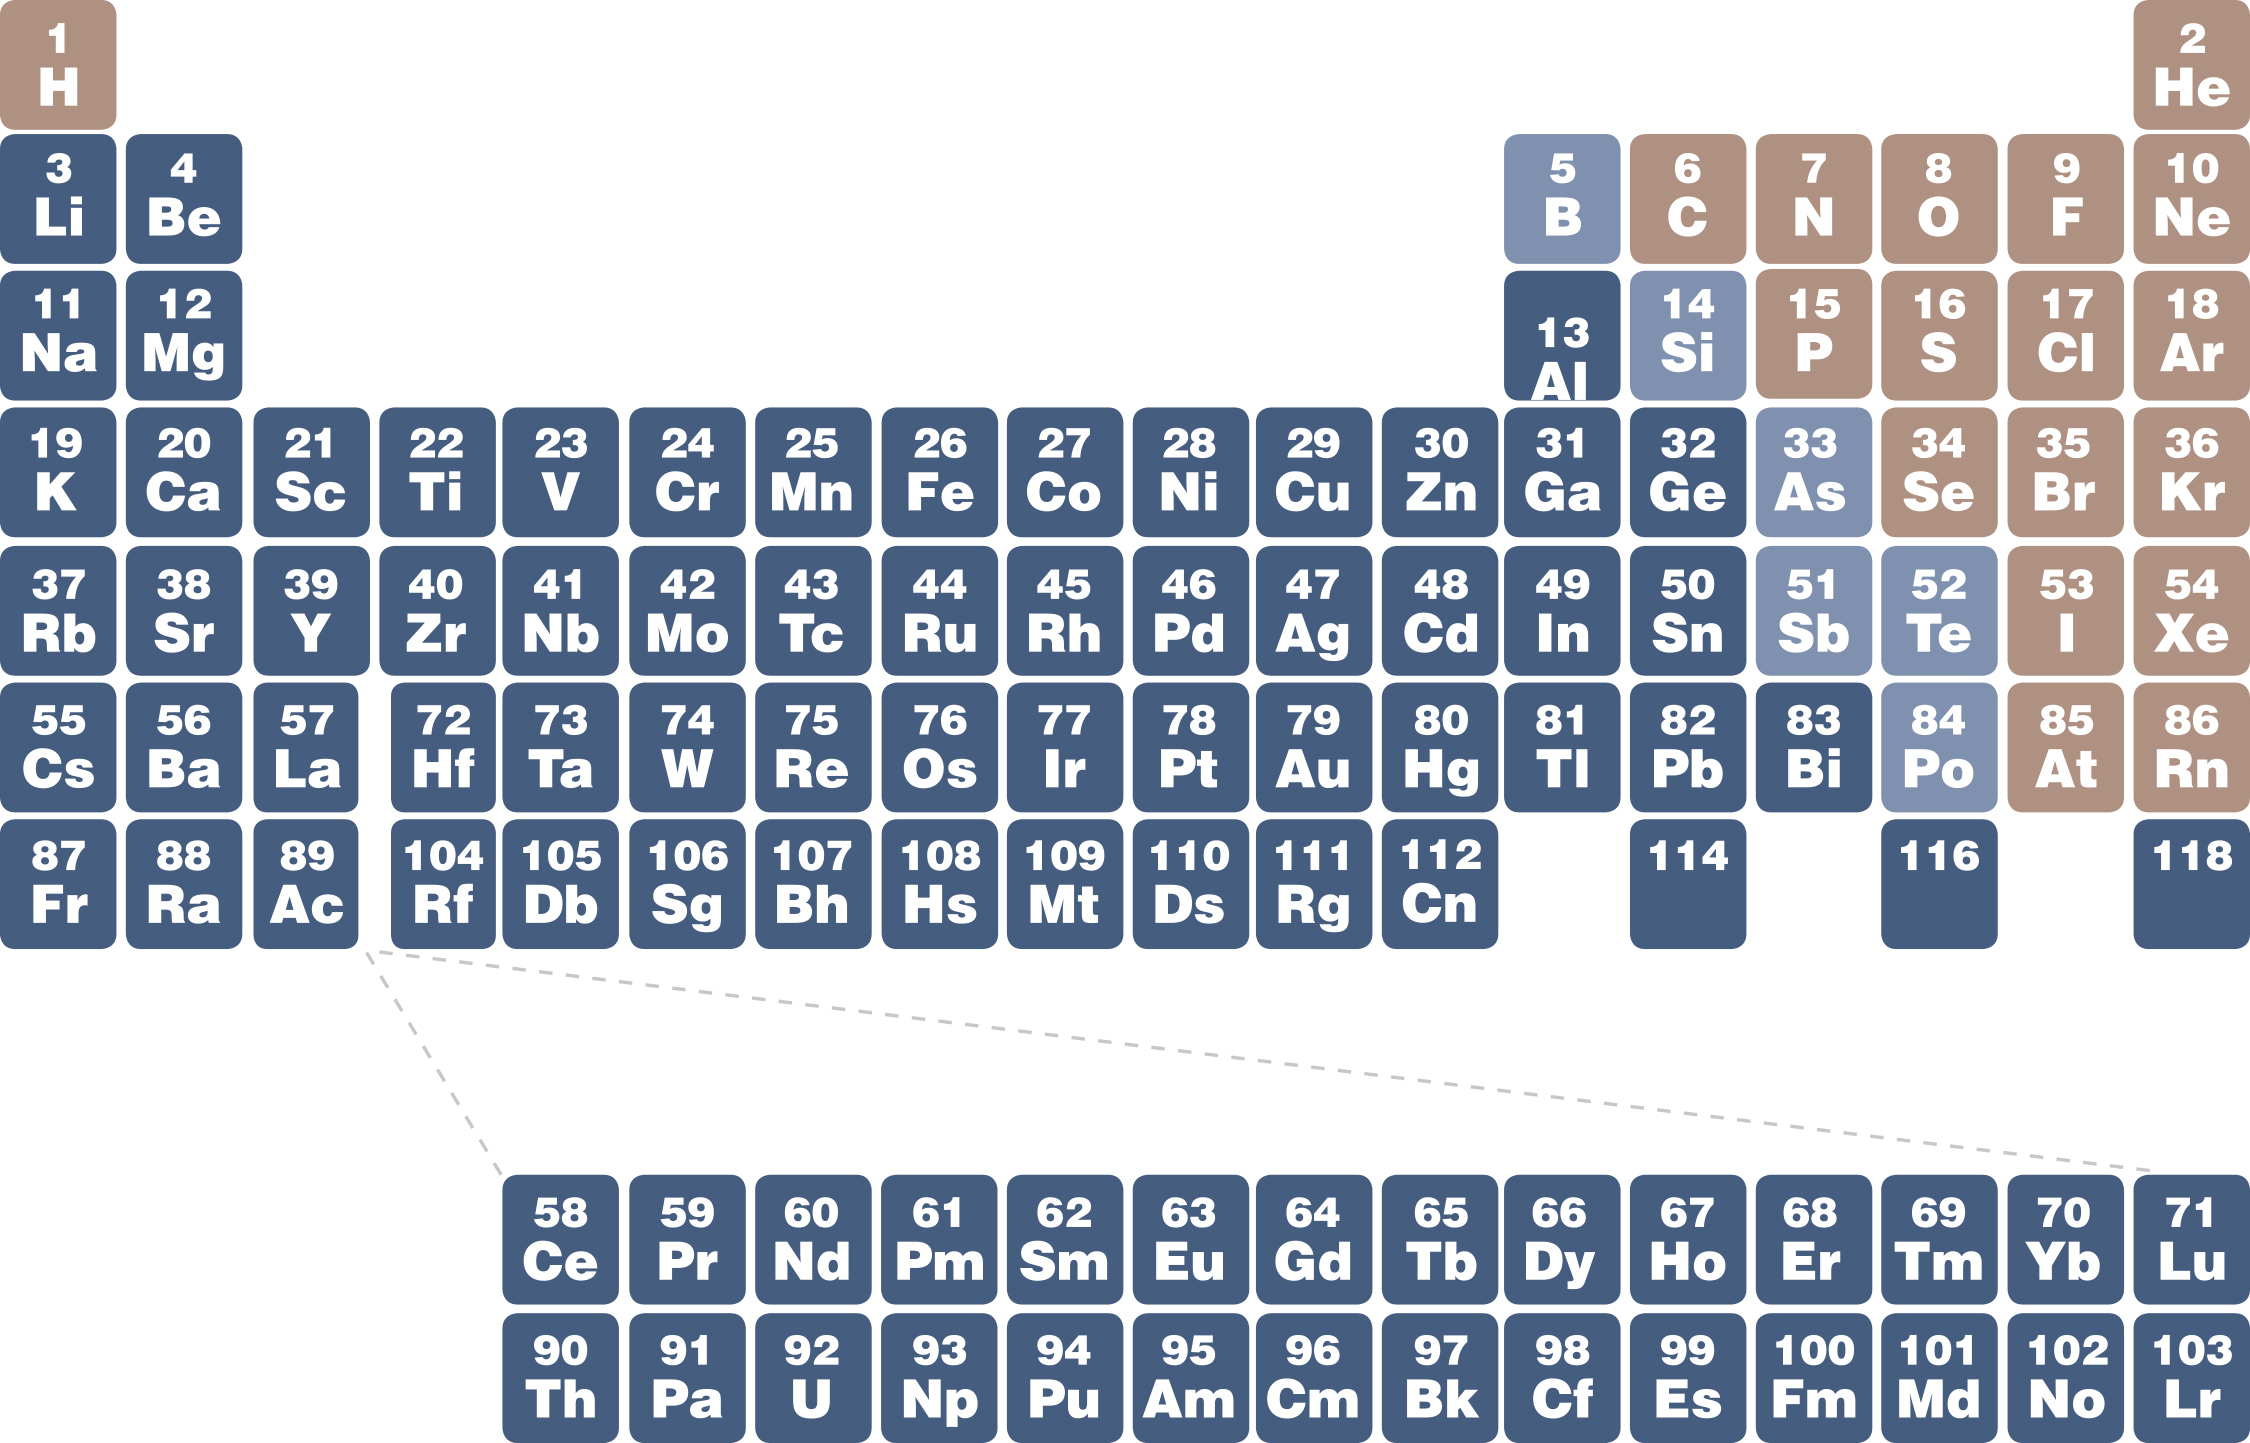 jpeg 72dpi jpeg300dpi - Periodic Table Applet